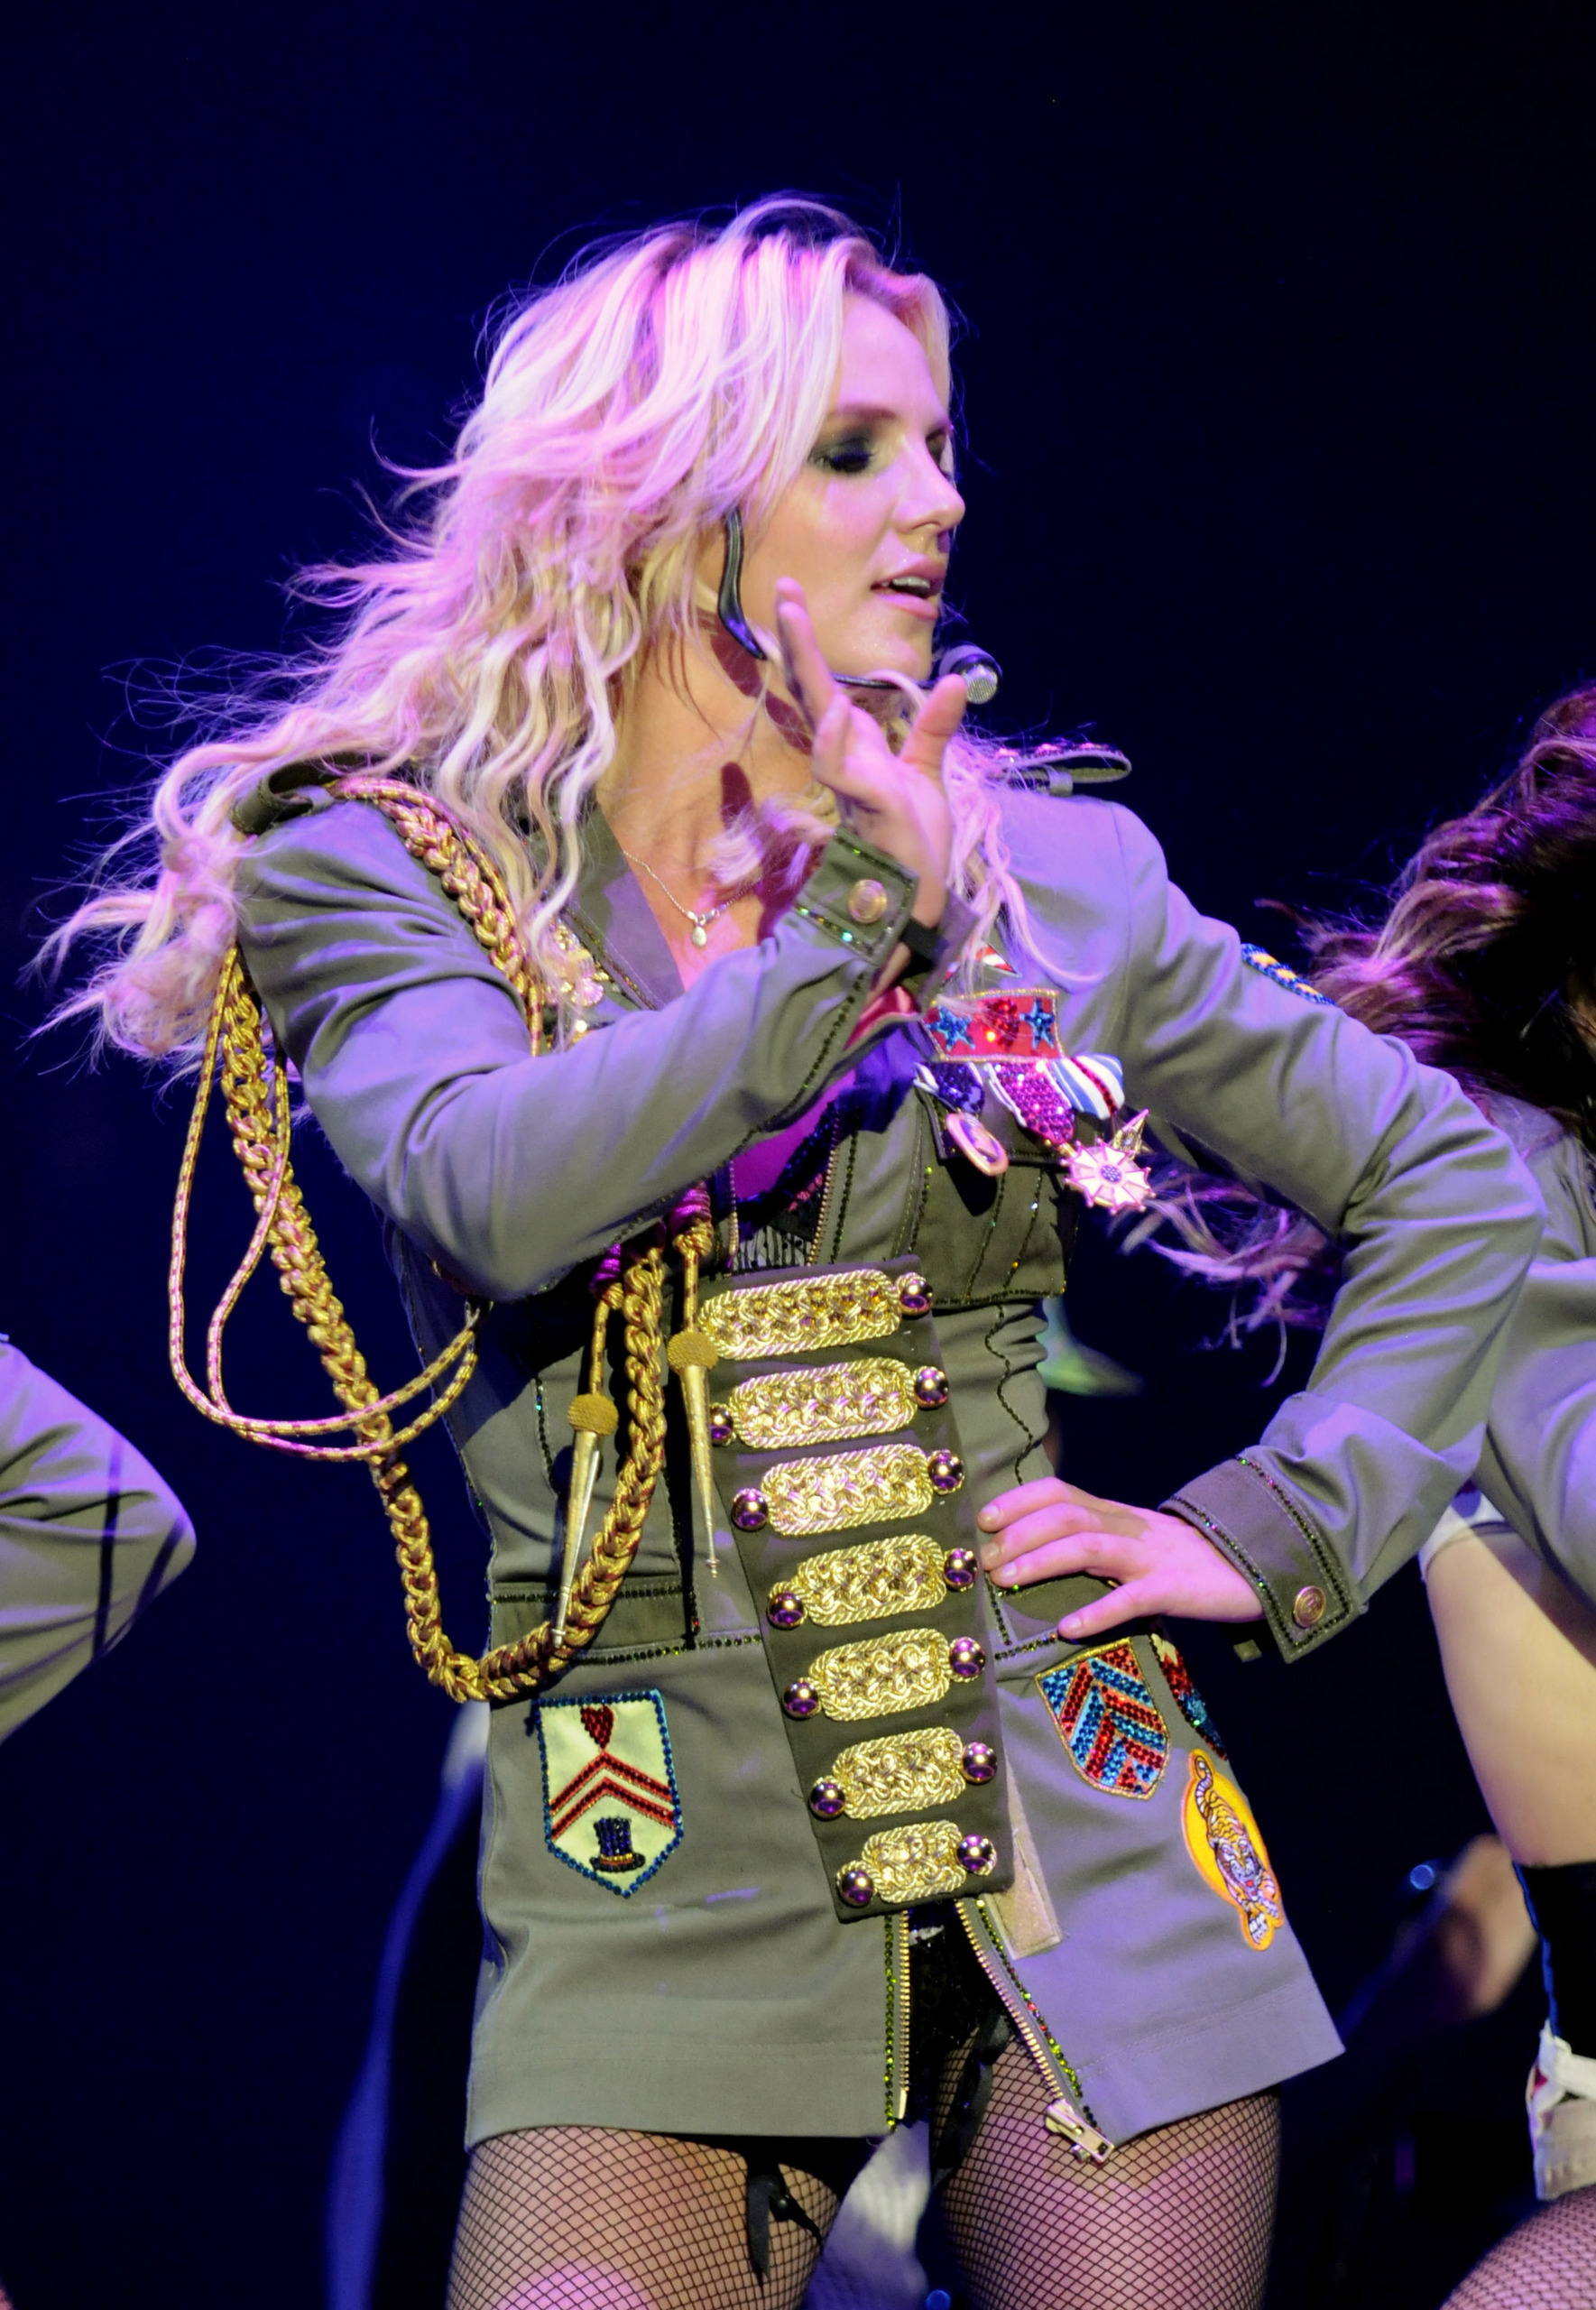 The-Circus-Tour-britney-spears-4667685-1769-2560.jpg